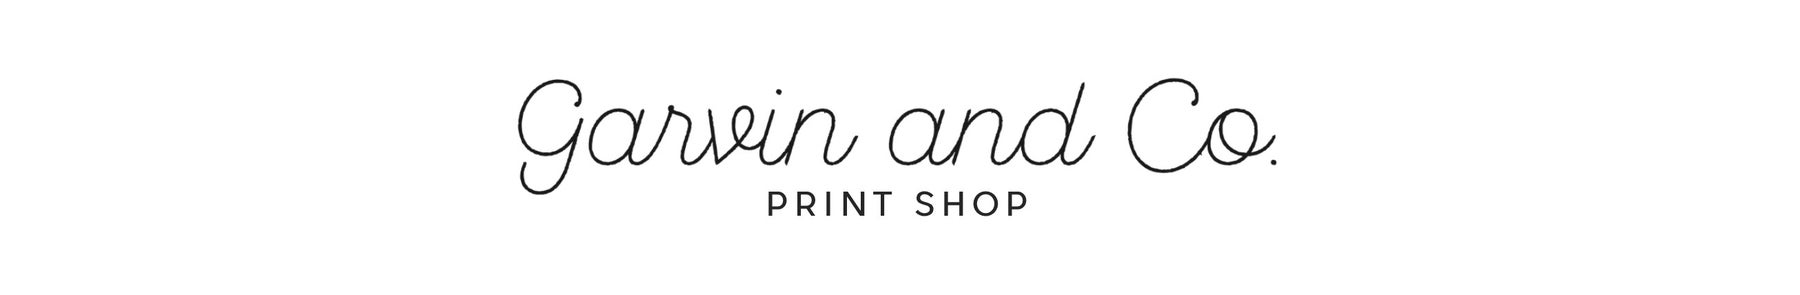 Garvin and Co. Print Shop